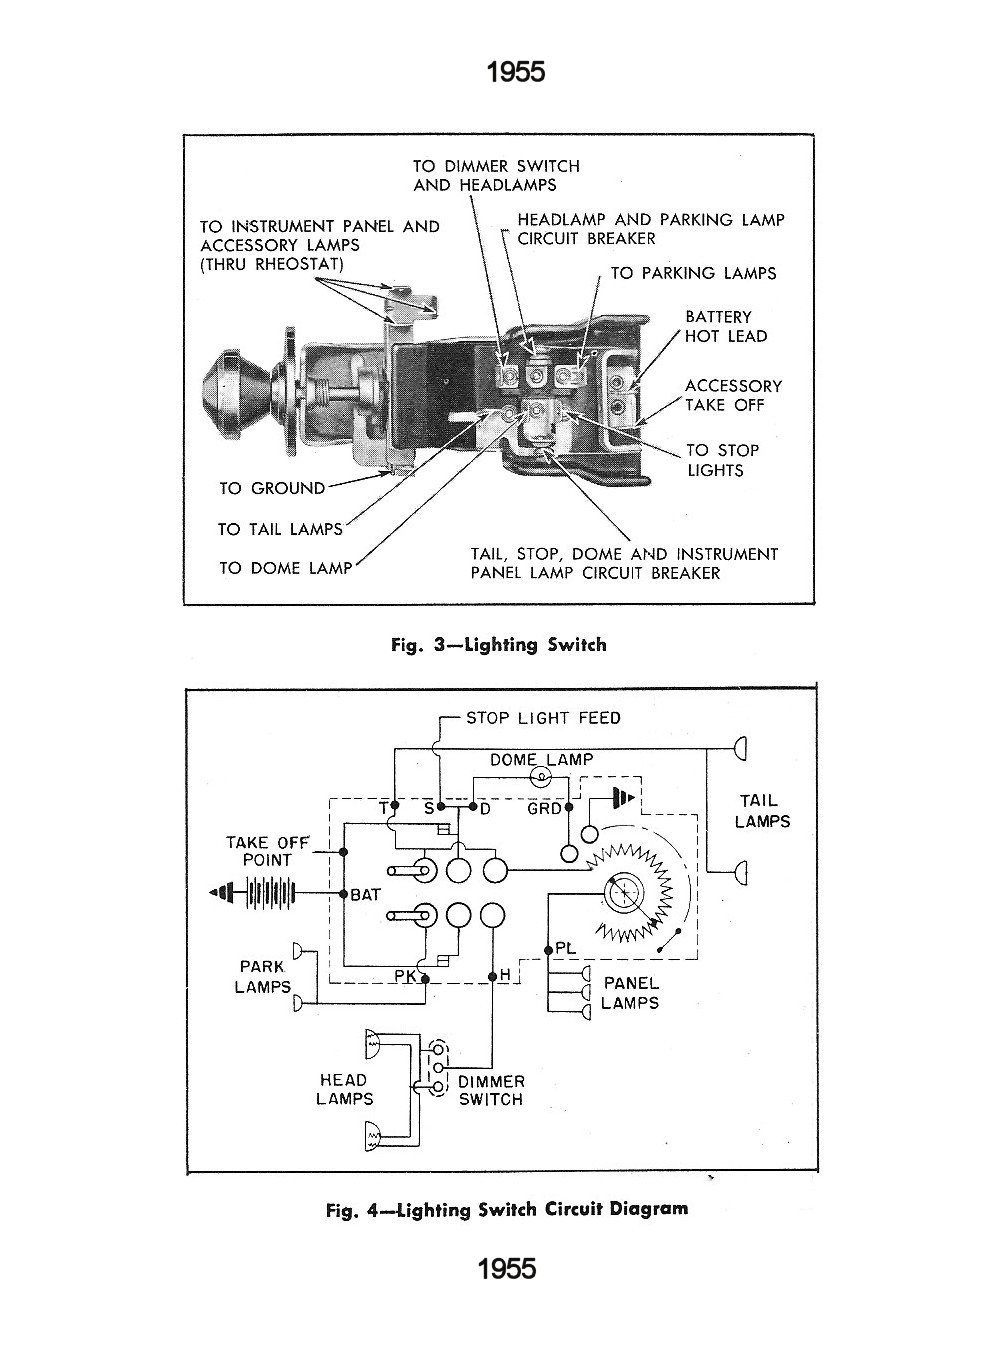 Swell 1984 Chevy C10 Fuse Box Diagram Basic Electronics Wiring Diagram Wiring Cloud Ratagdienstapotheekhoekschewaardnl